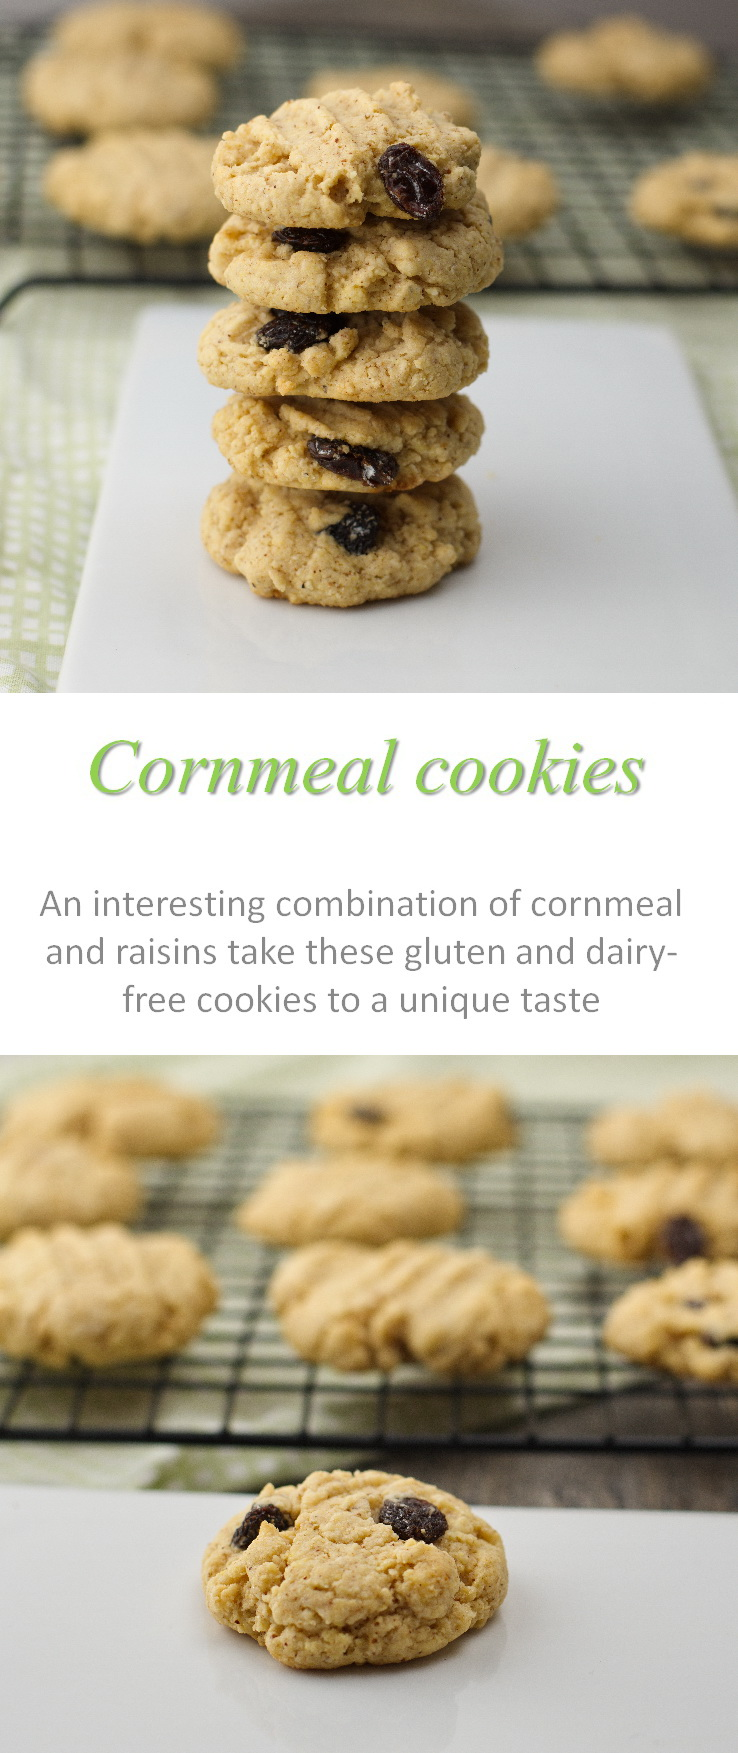 An interesting combination of cornmeal and raisins - these gluten-free cornmeal cookies are a unique but yummy taste! #cornmeal